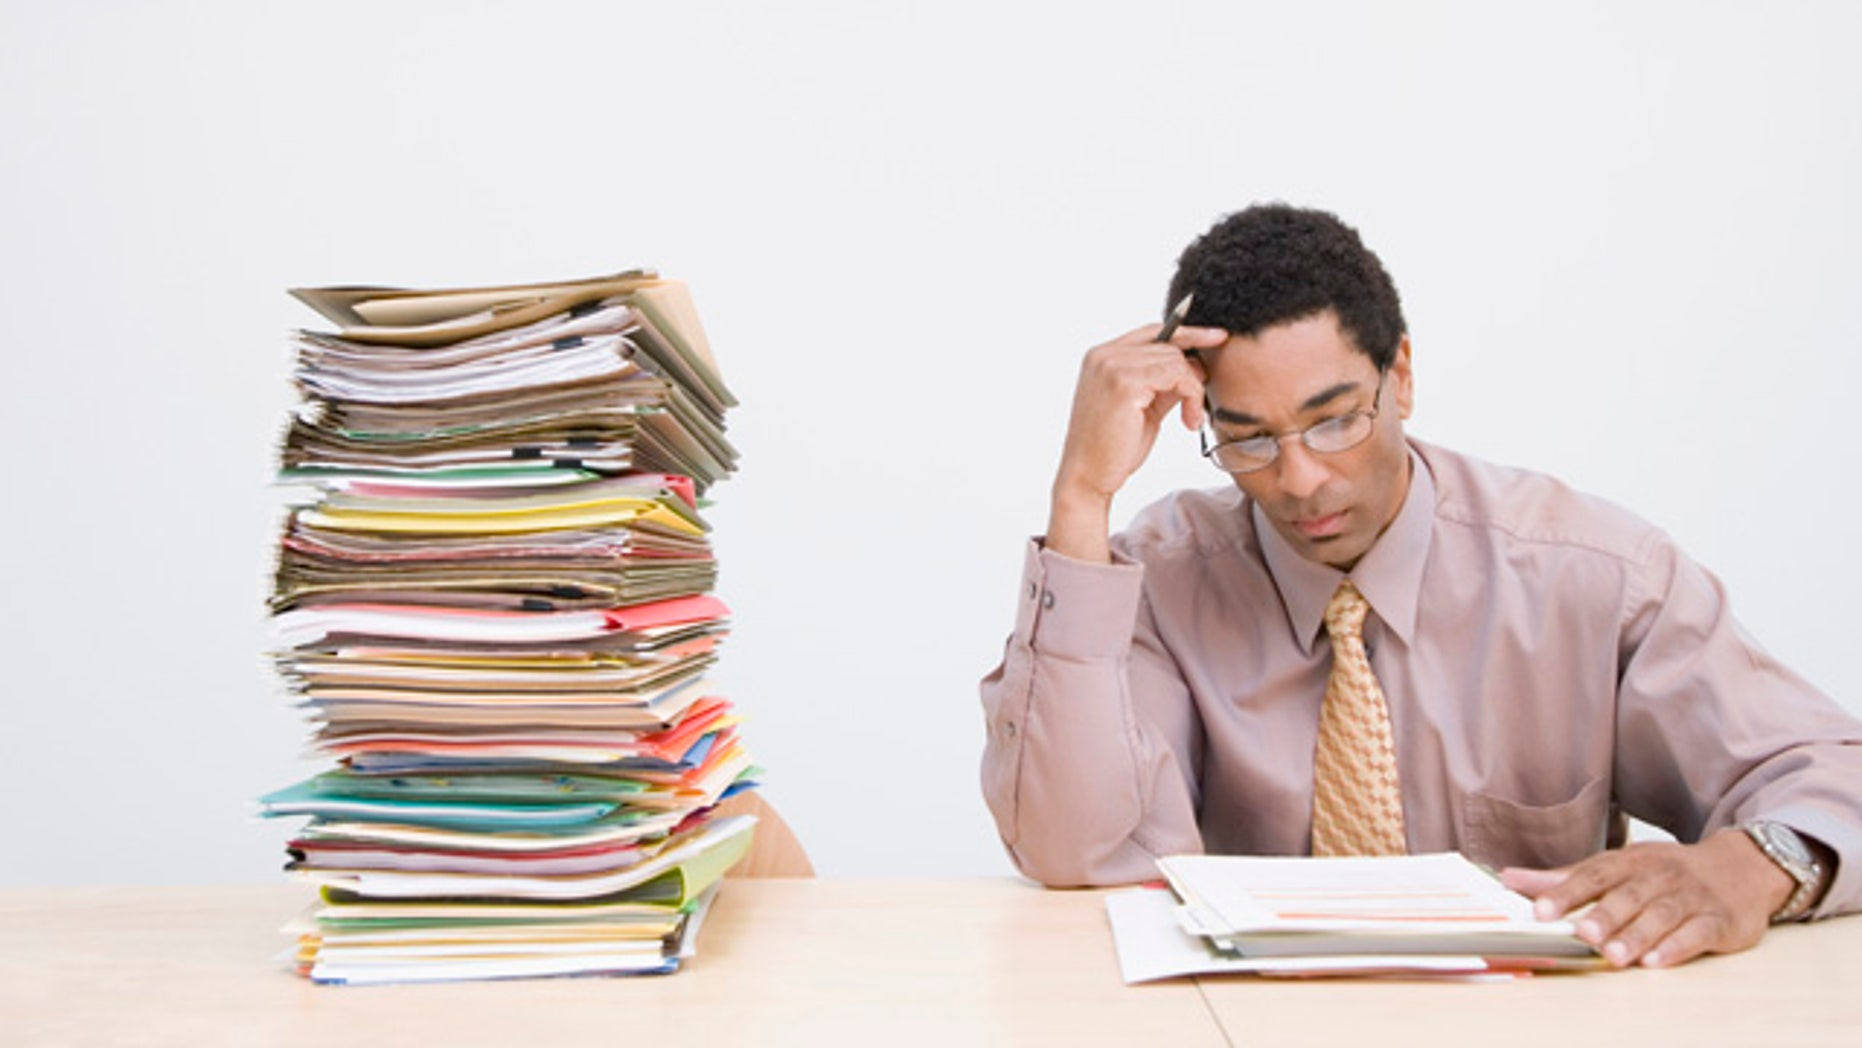 Businessman sitting next to stack of documents on desk, clocks on wall